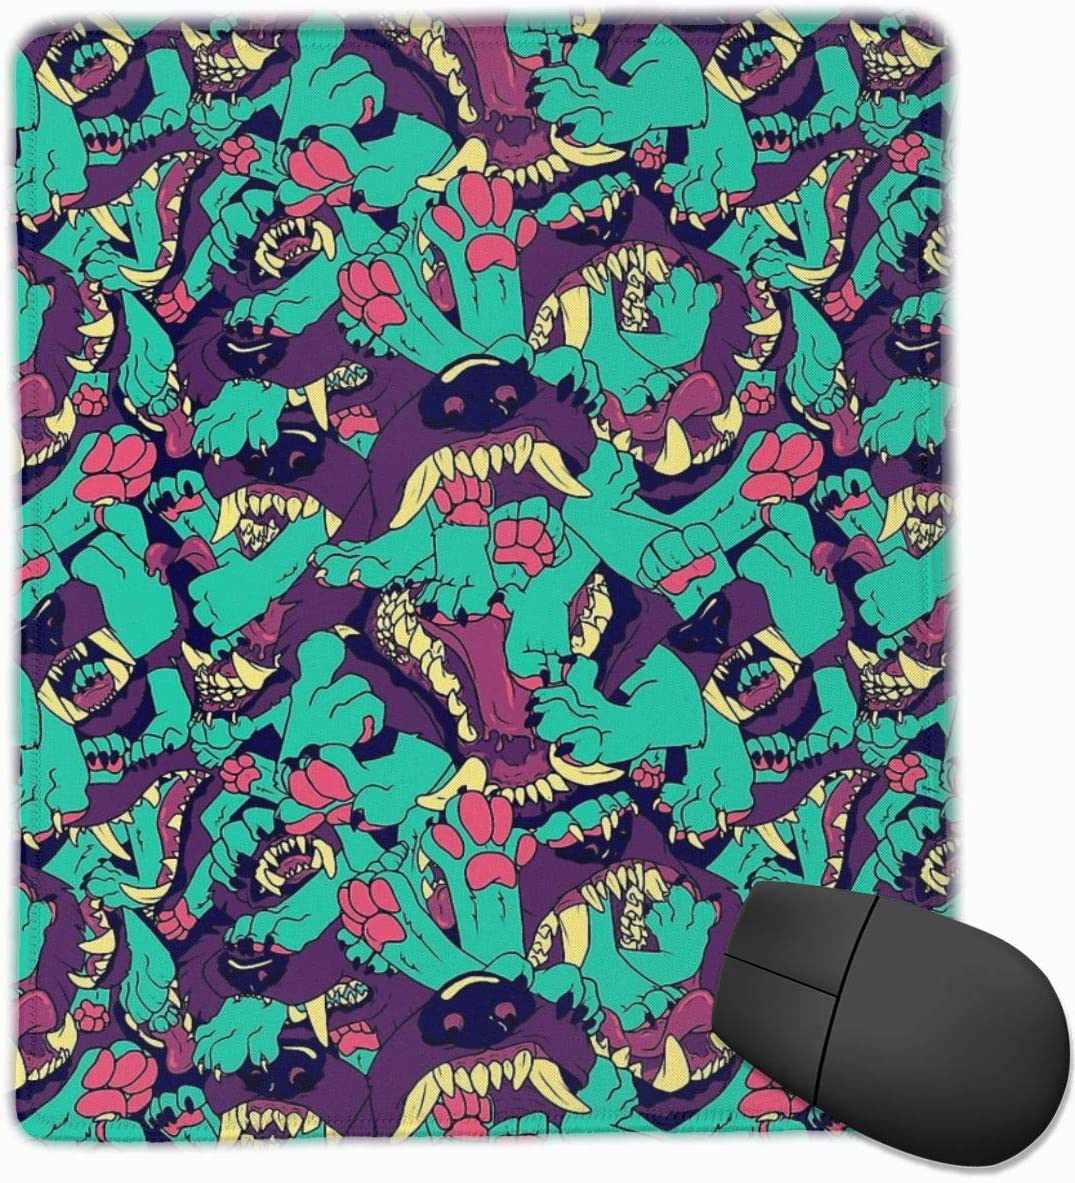 KEEHUA Tokyo Mew Mew Group Non-Slip Rubber Mousepad Gaming Mouse Pad with Stitched Edge 10x12 in